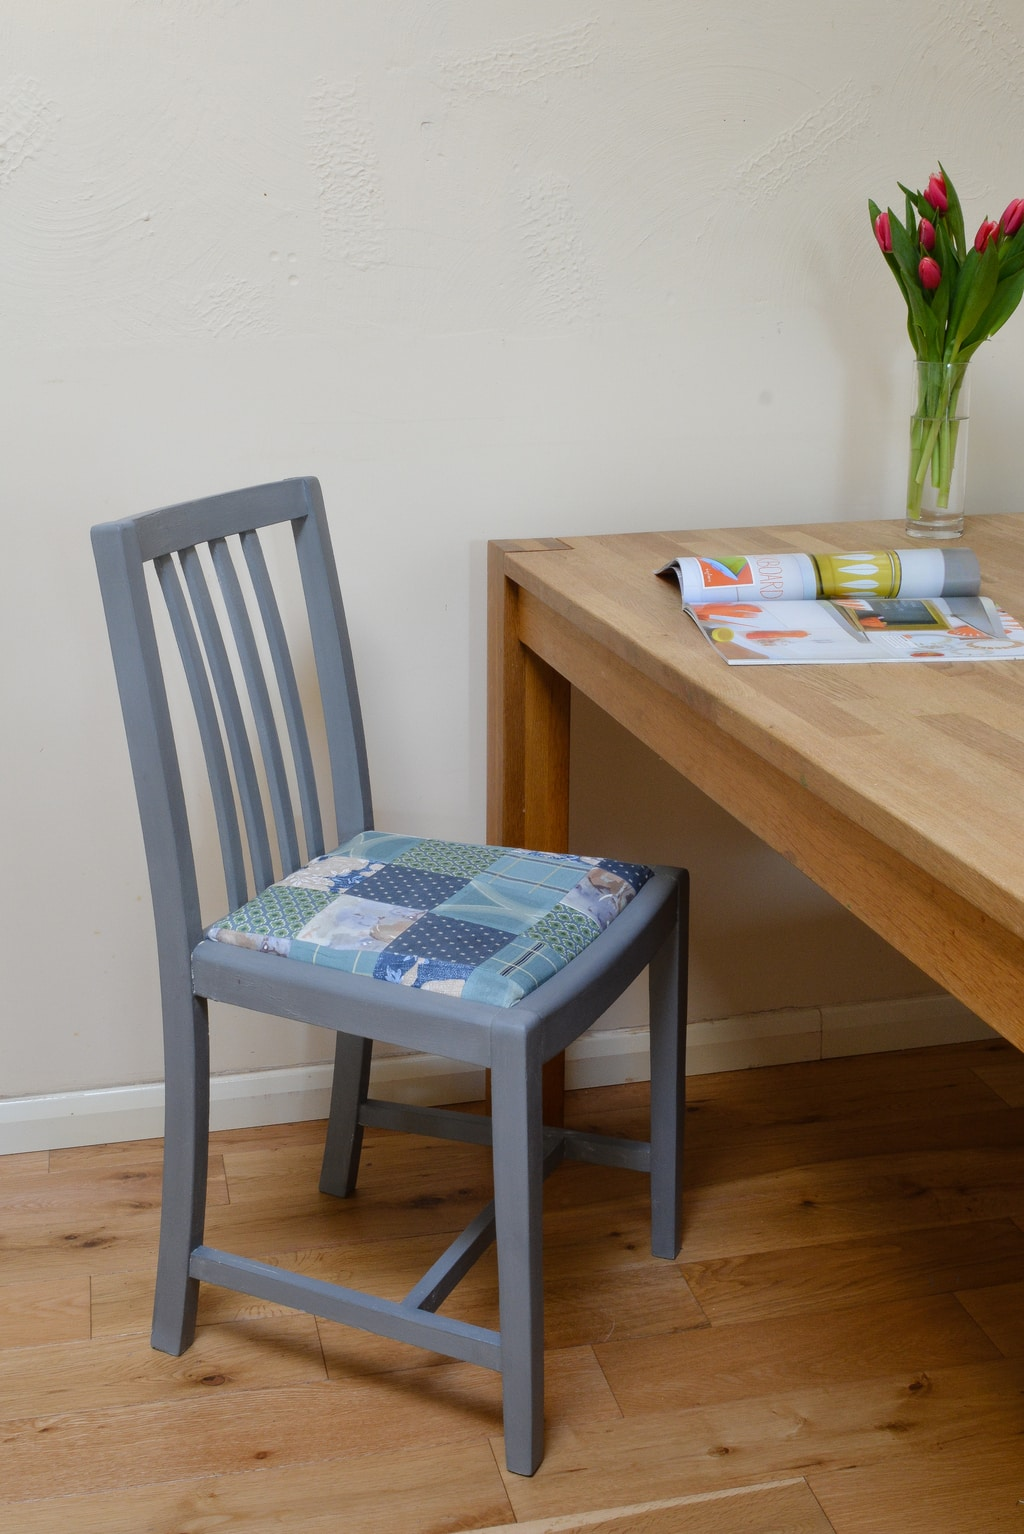 Upcycle a dining room chair - use wax to prevent stains